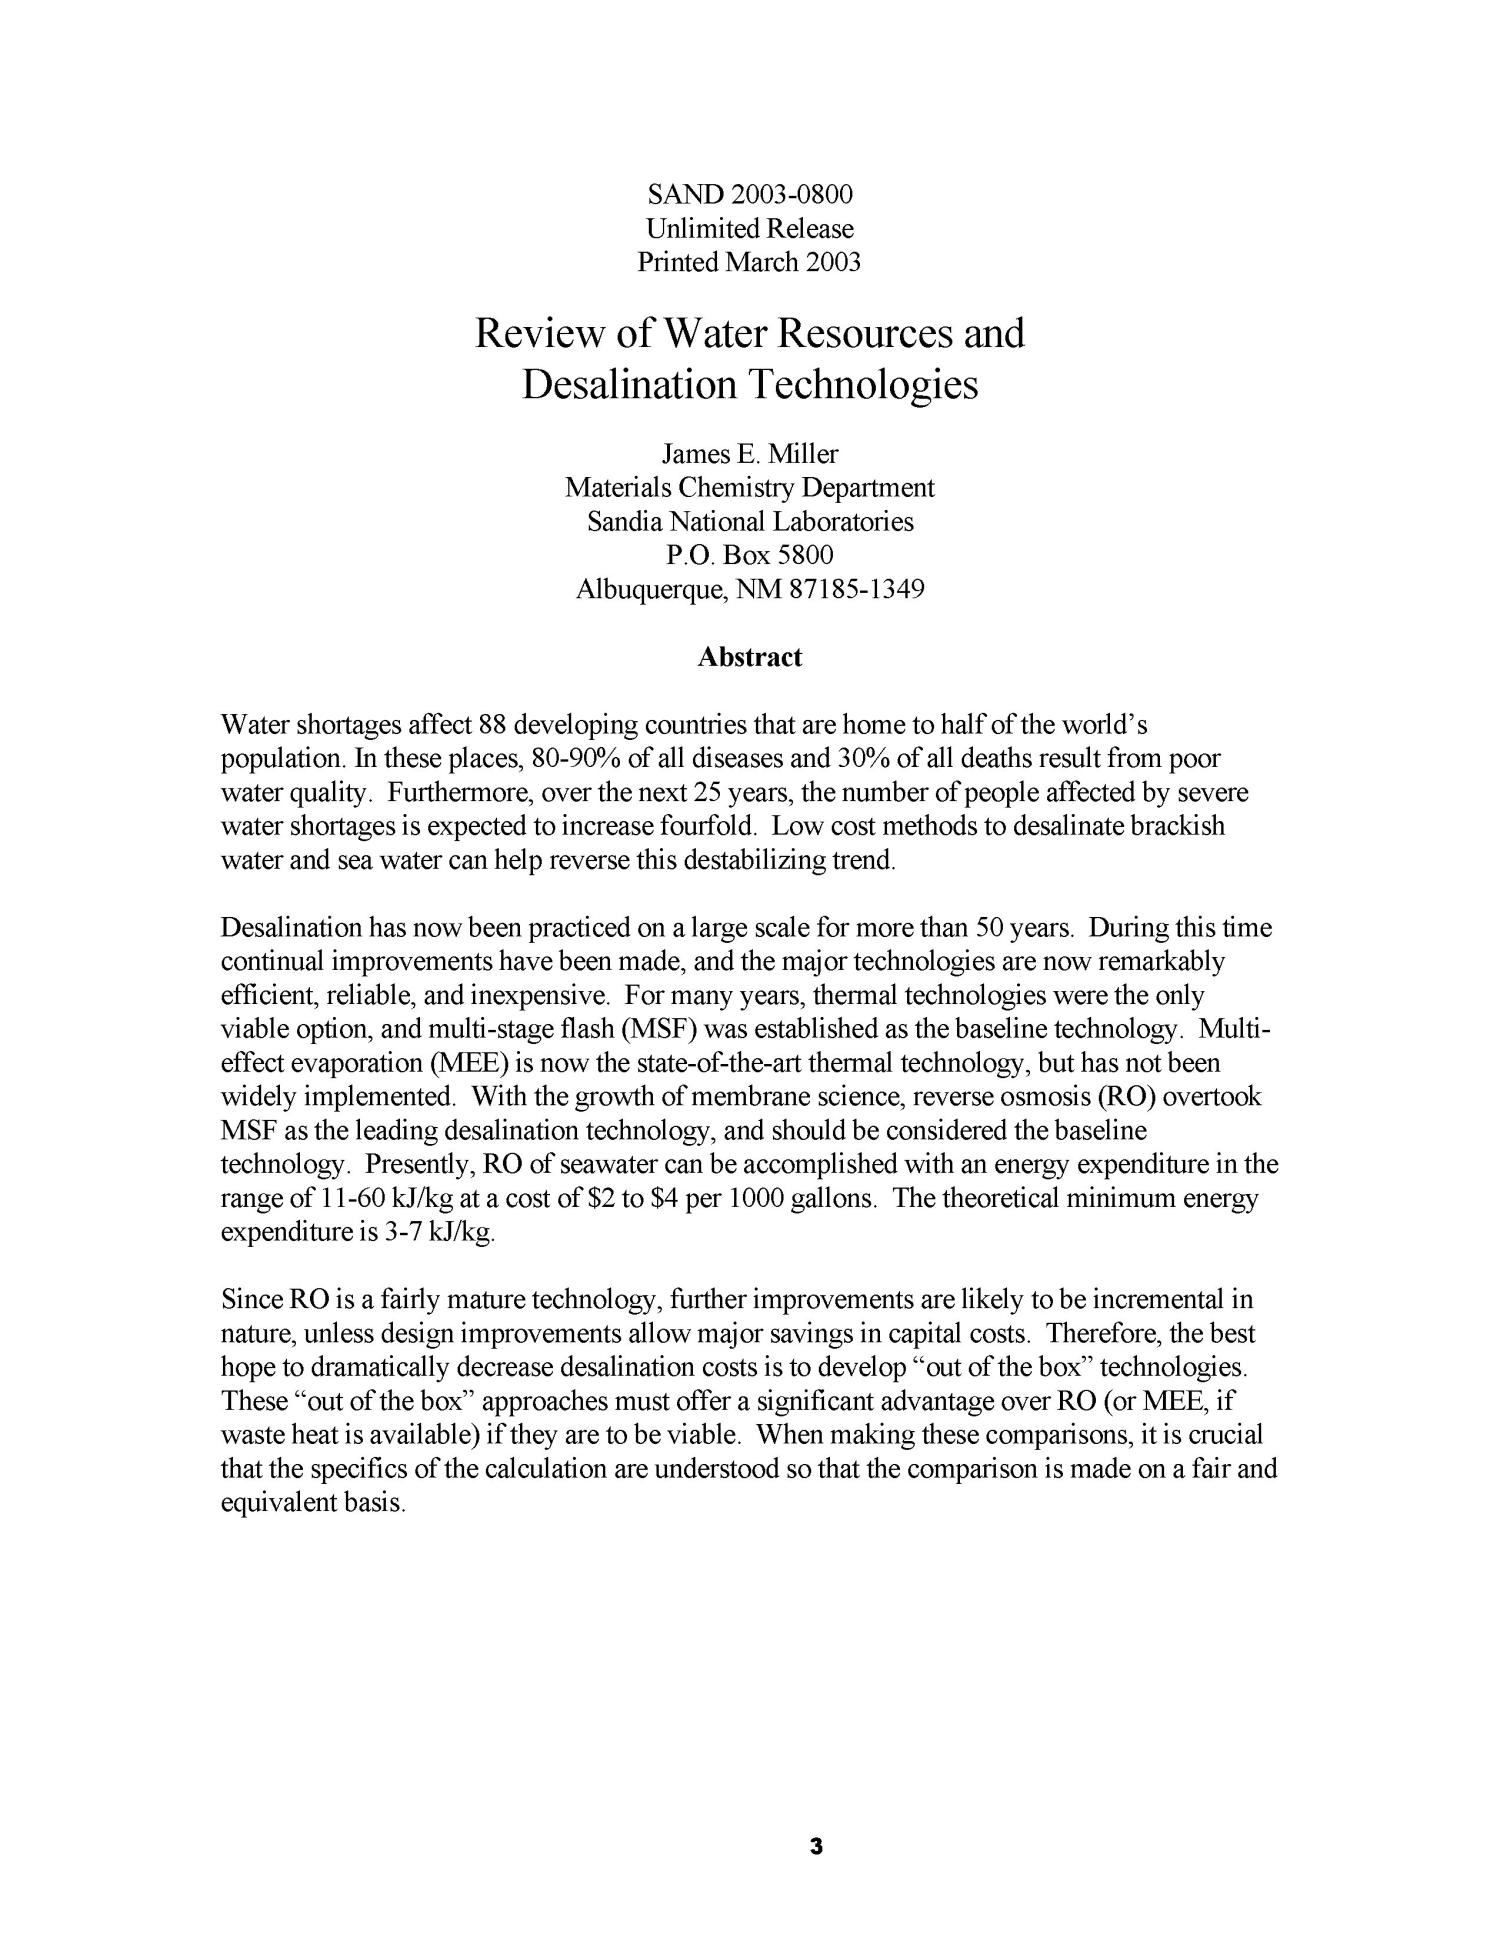 Review of Water Resources and Desalination Technologies Page 3